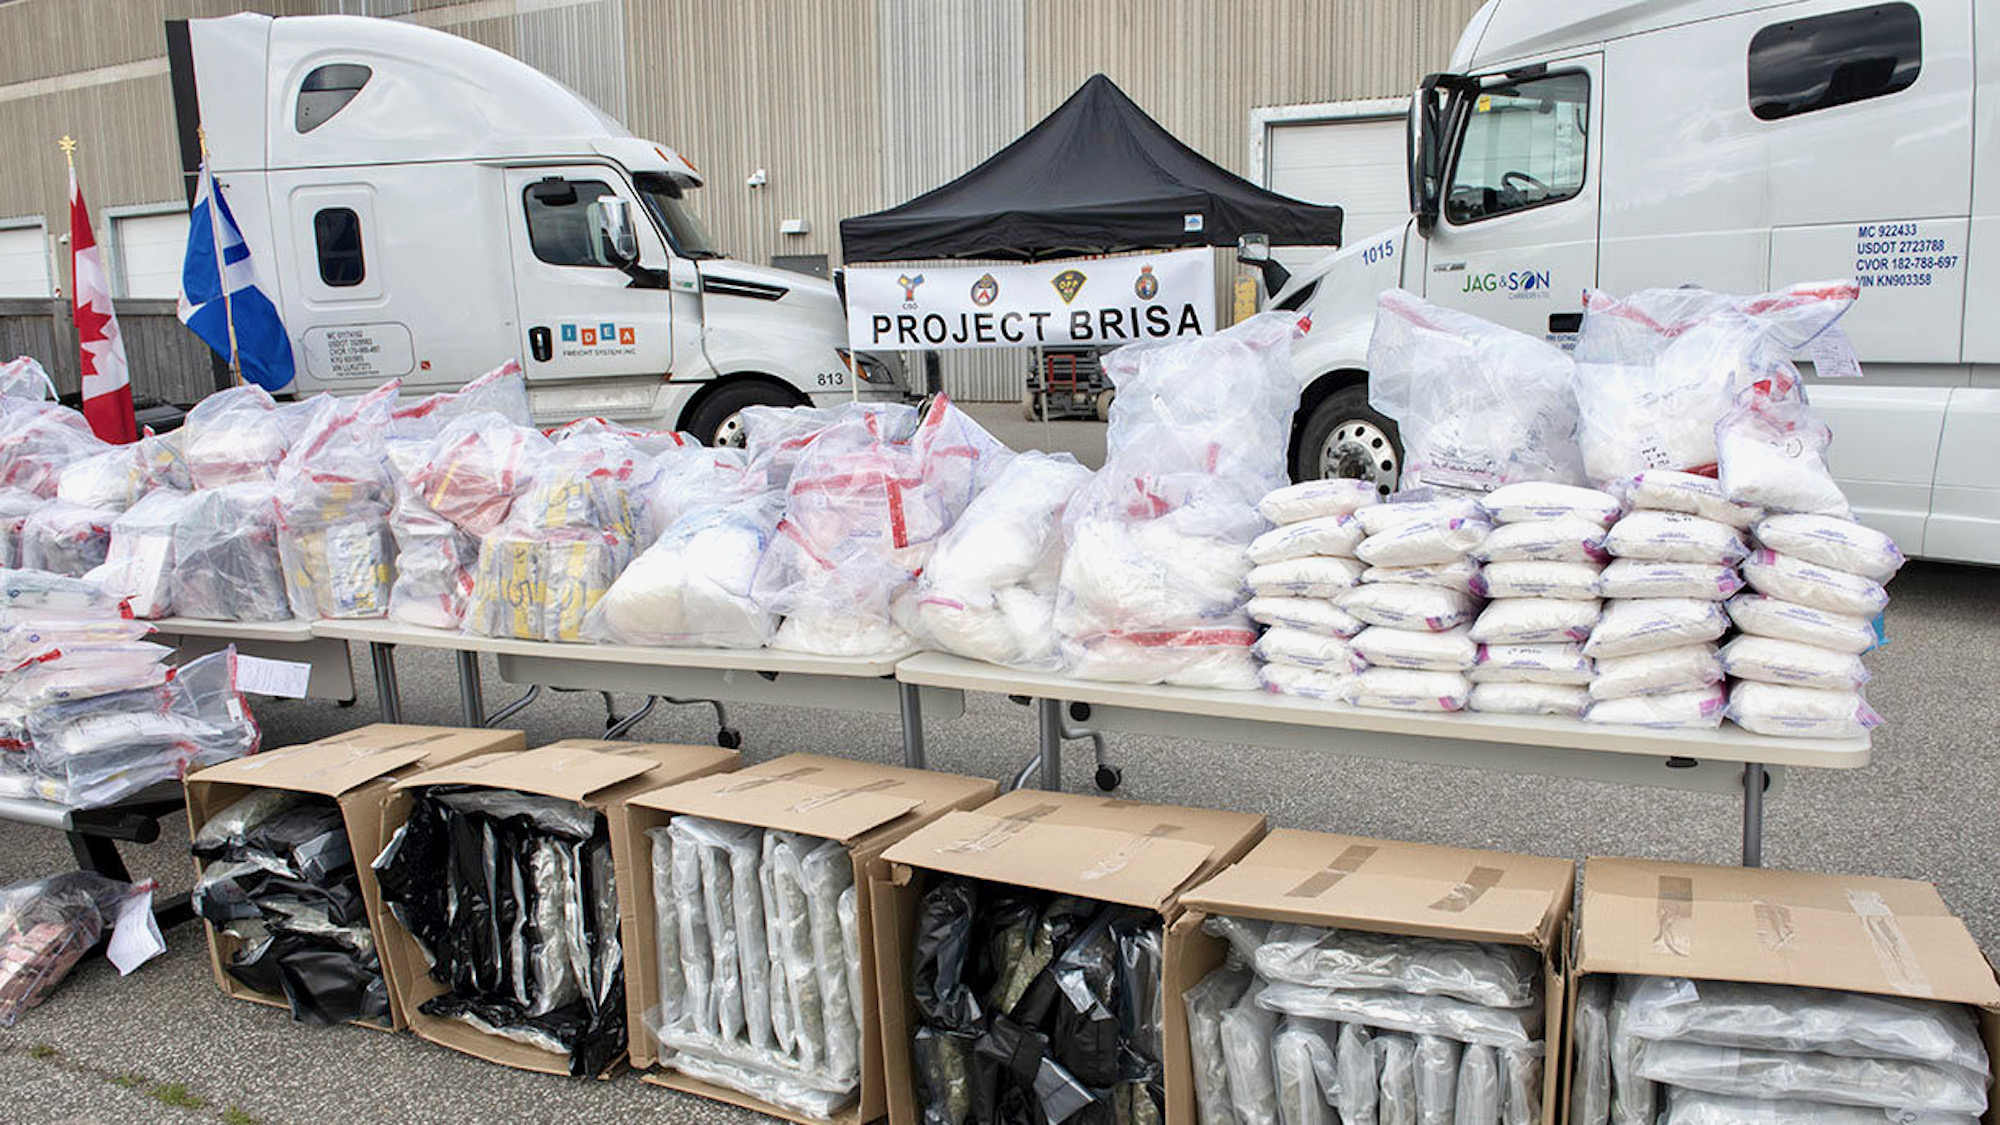 A picture of drugs and trucks seized during an investigation into drug trafficking in Canada.